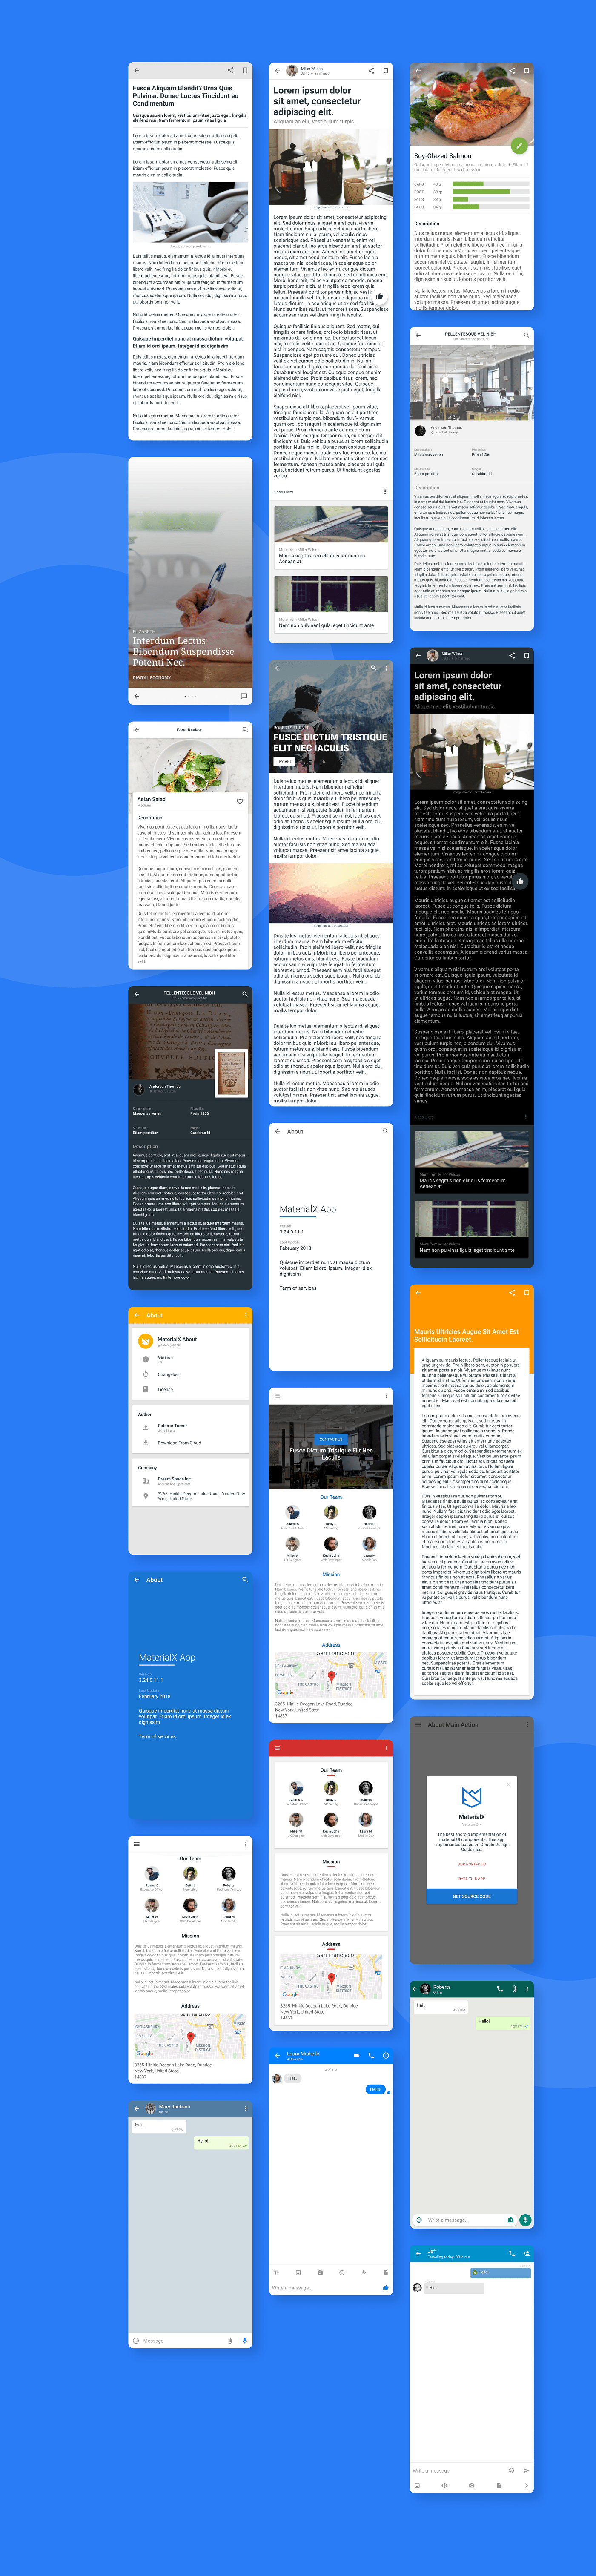 MaterialX - Android Material Design UI Components 2.7 - 34